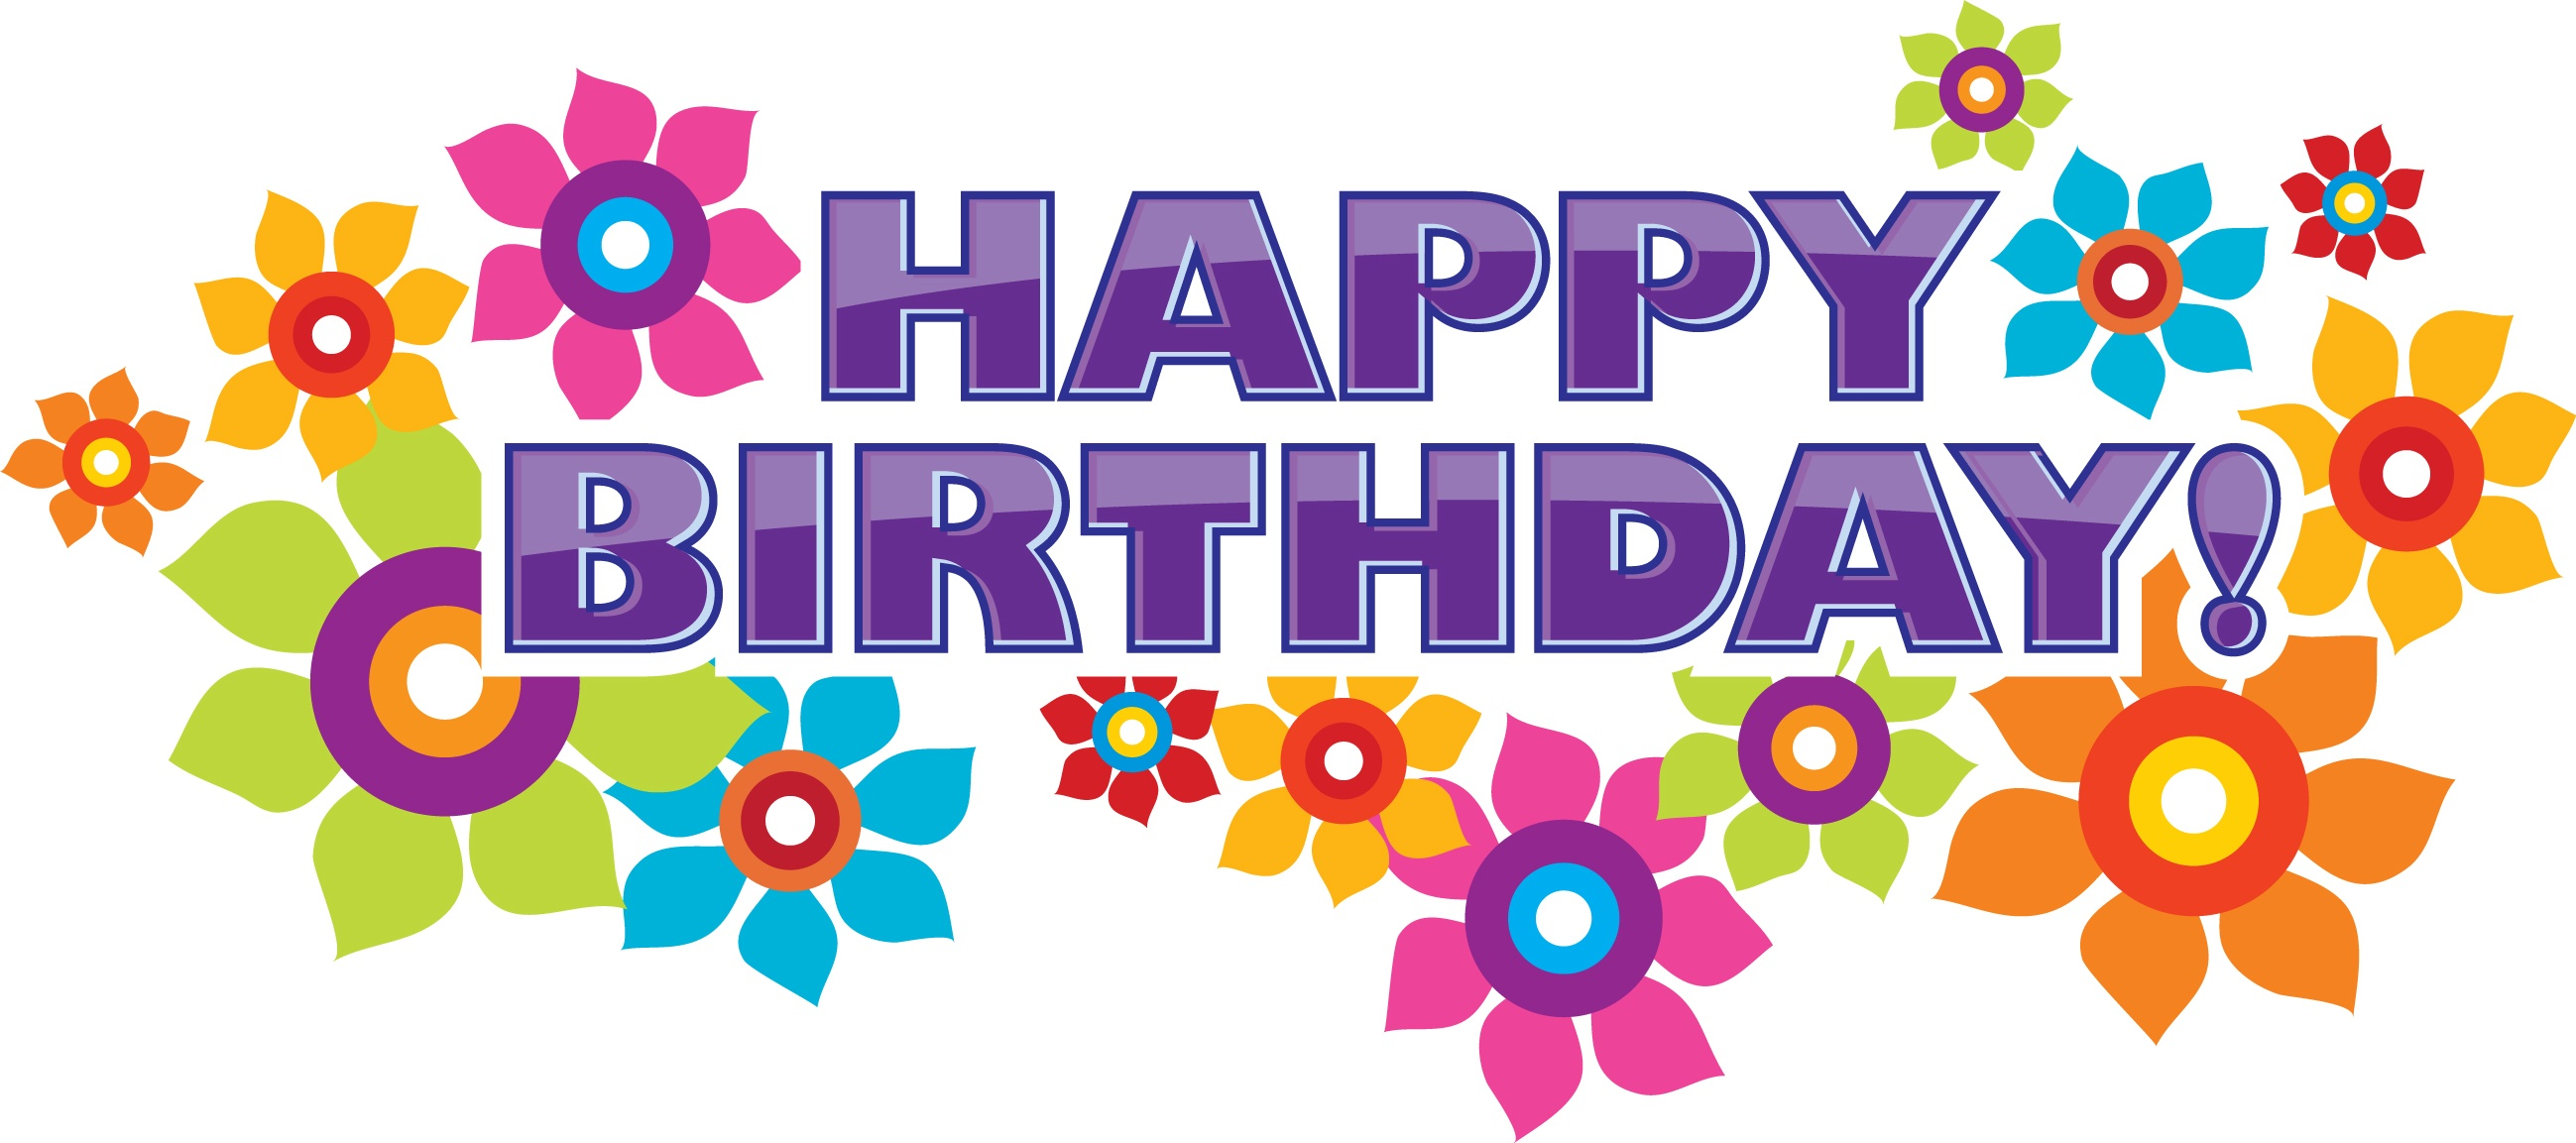 Birthdays of the month. Birthday clipart march